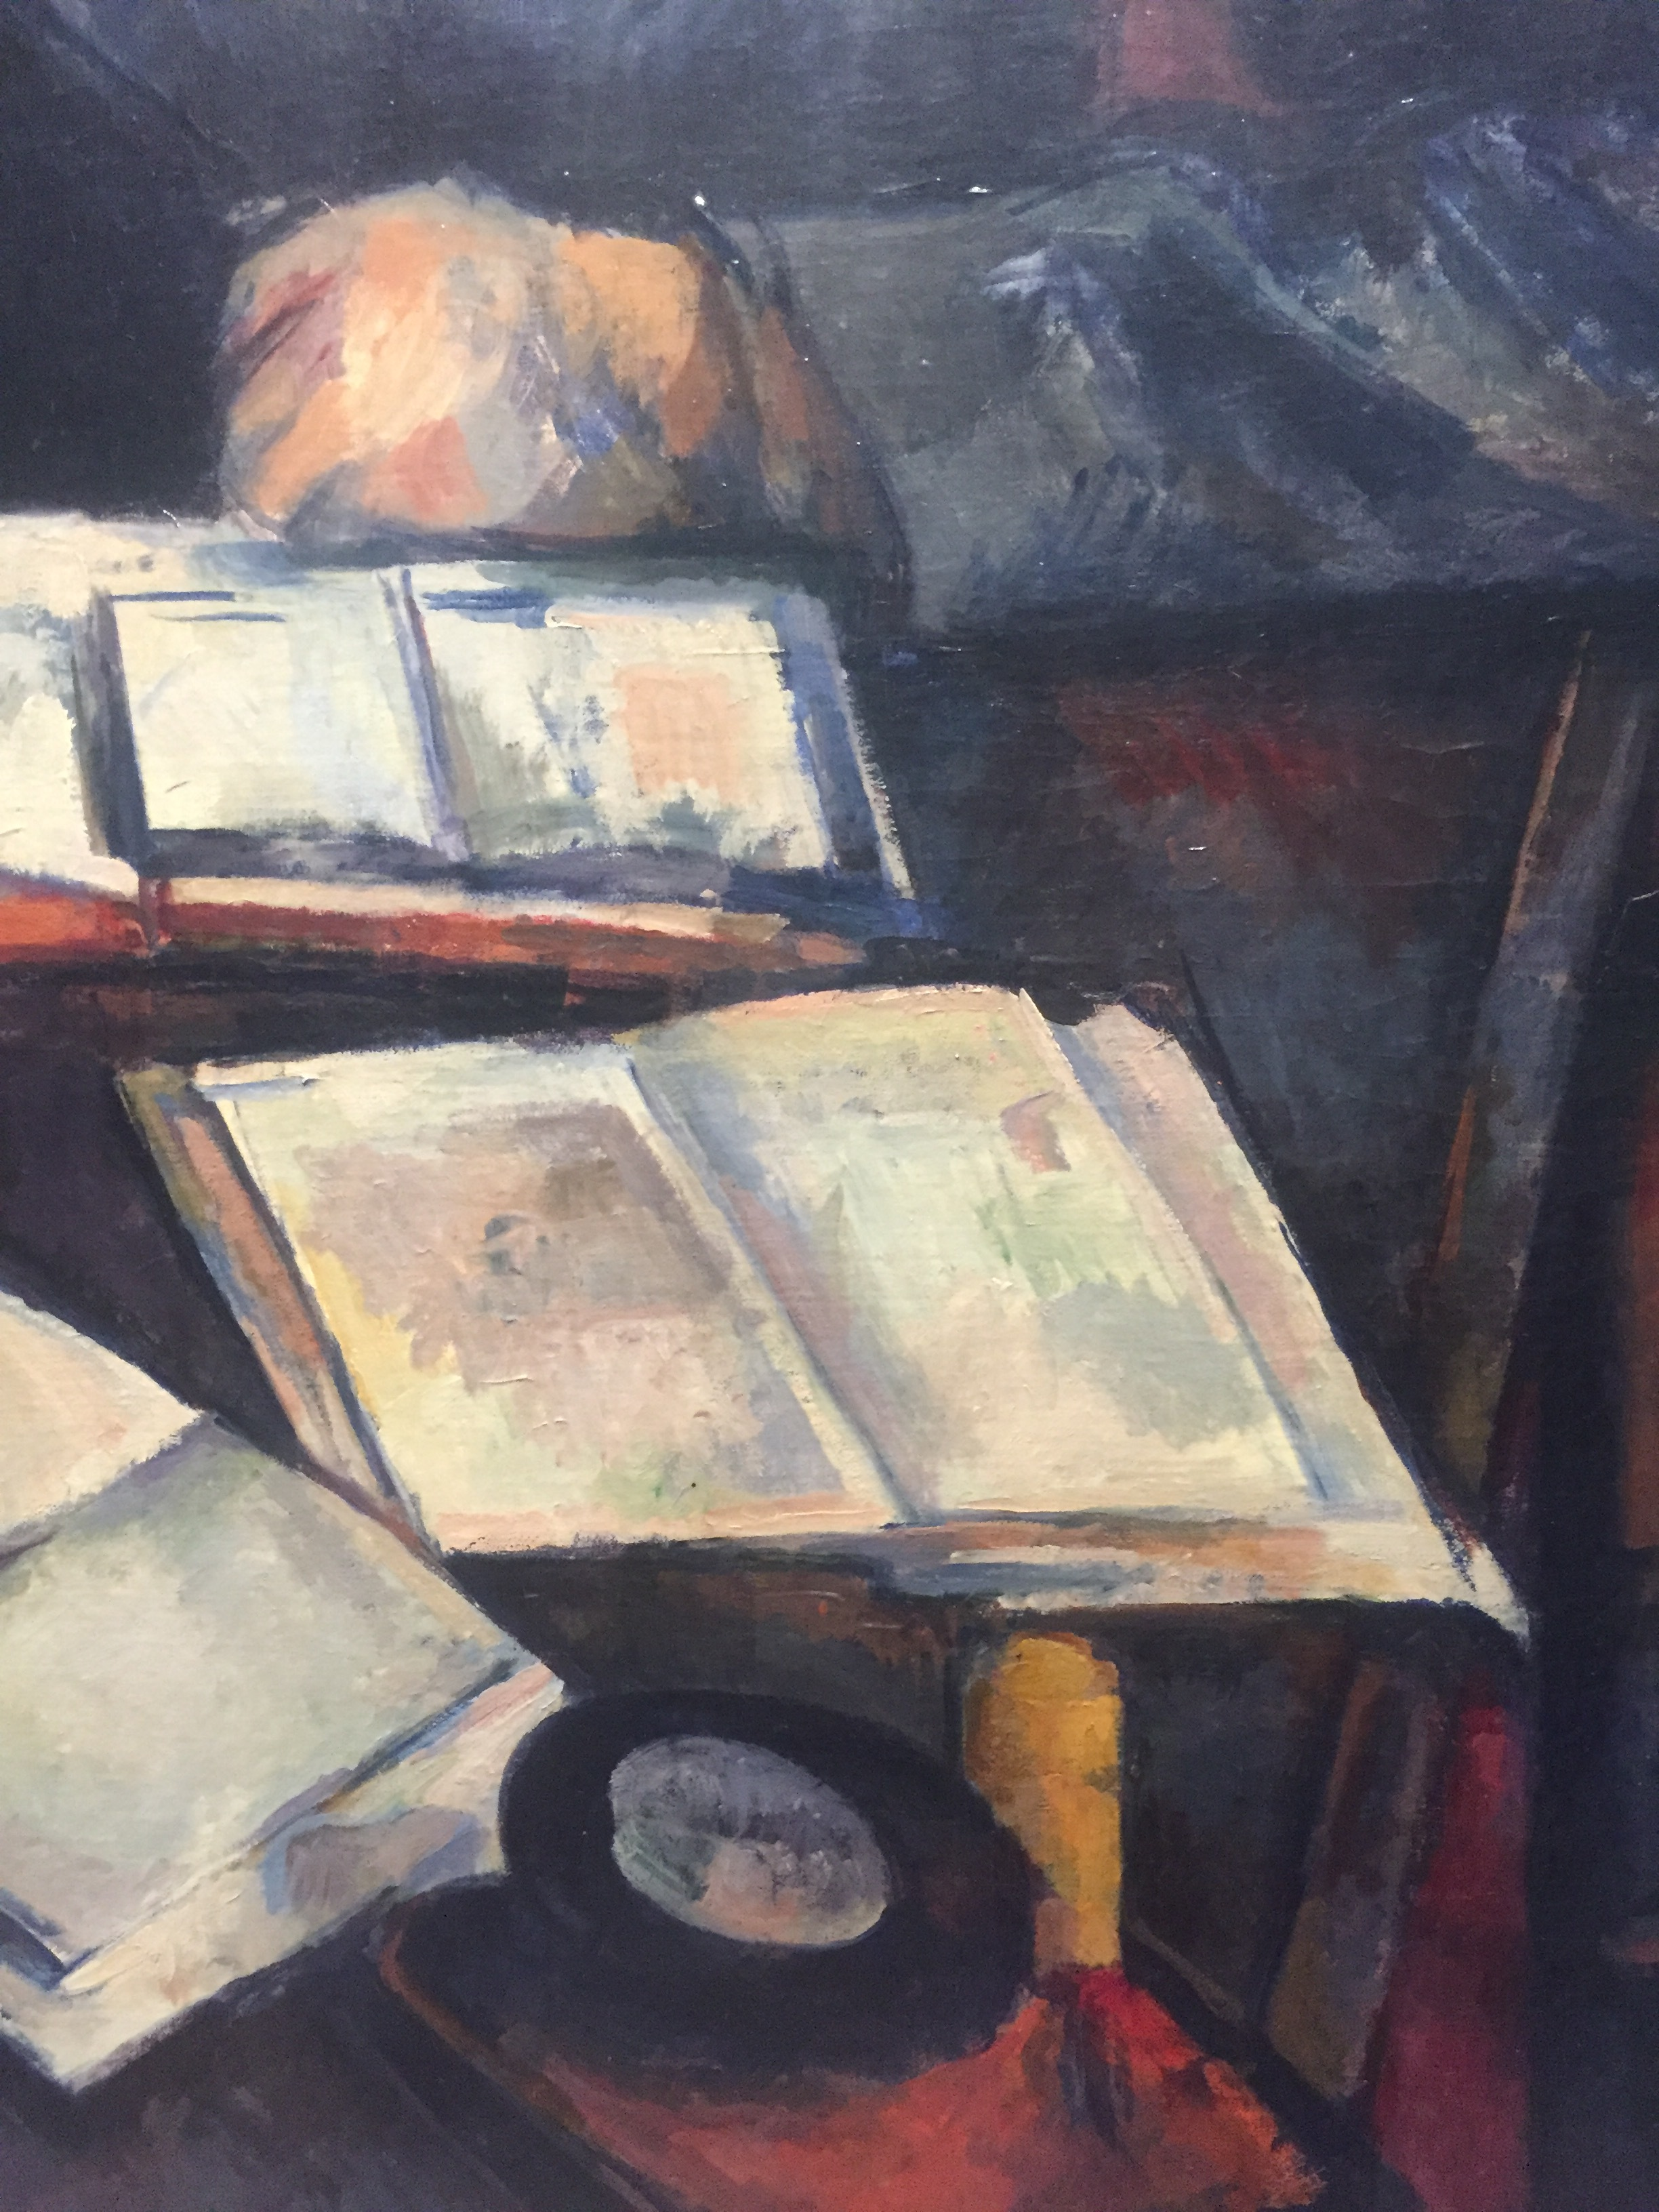 cezanne books and pages detail.JPG